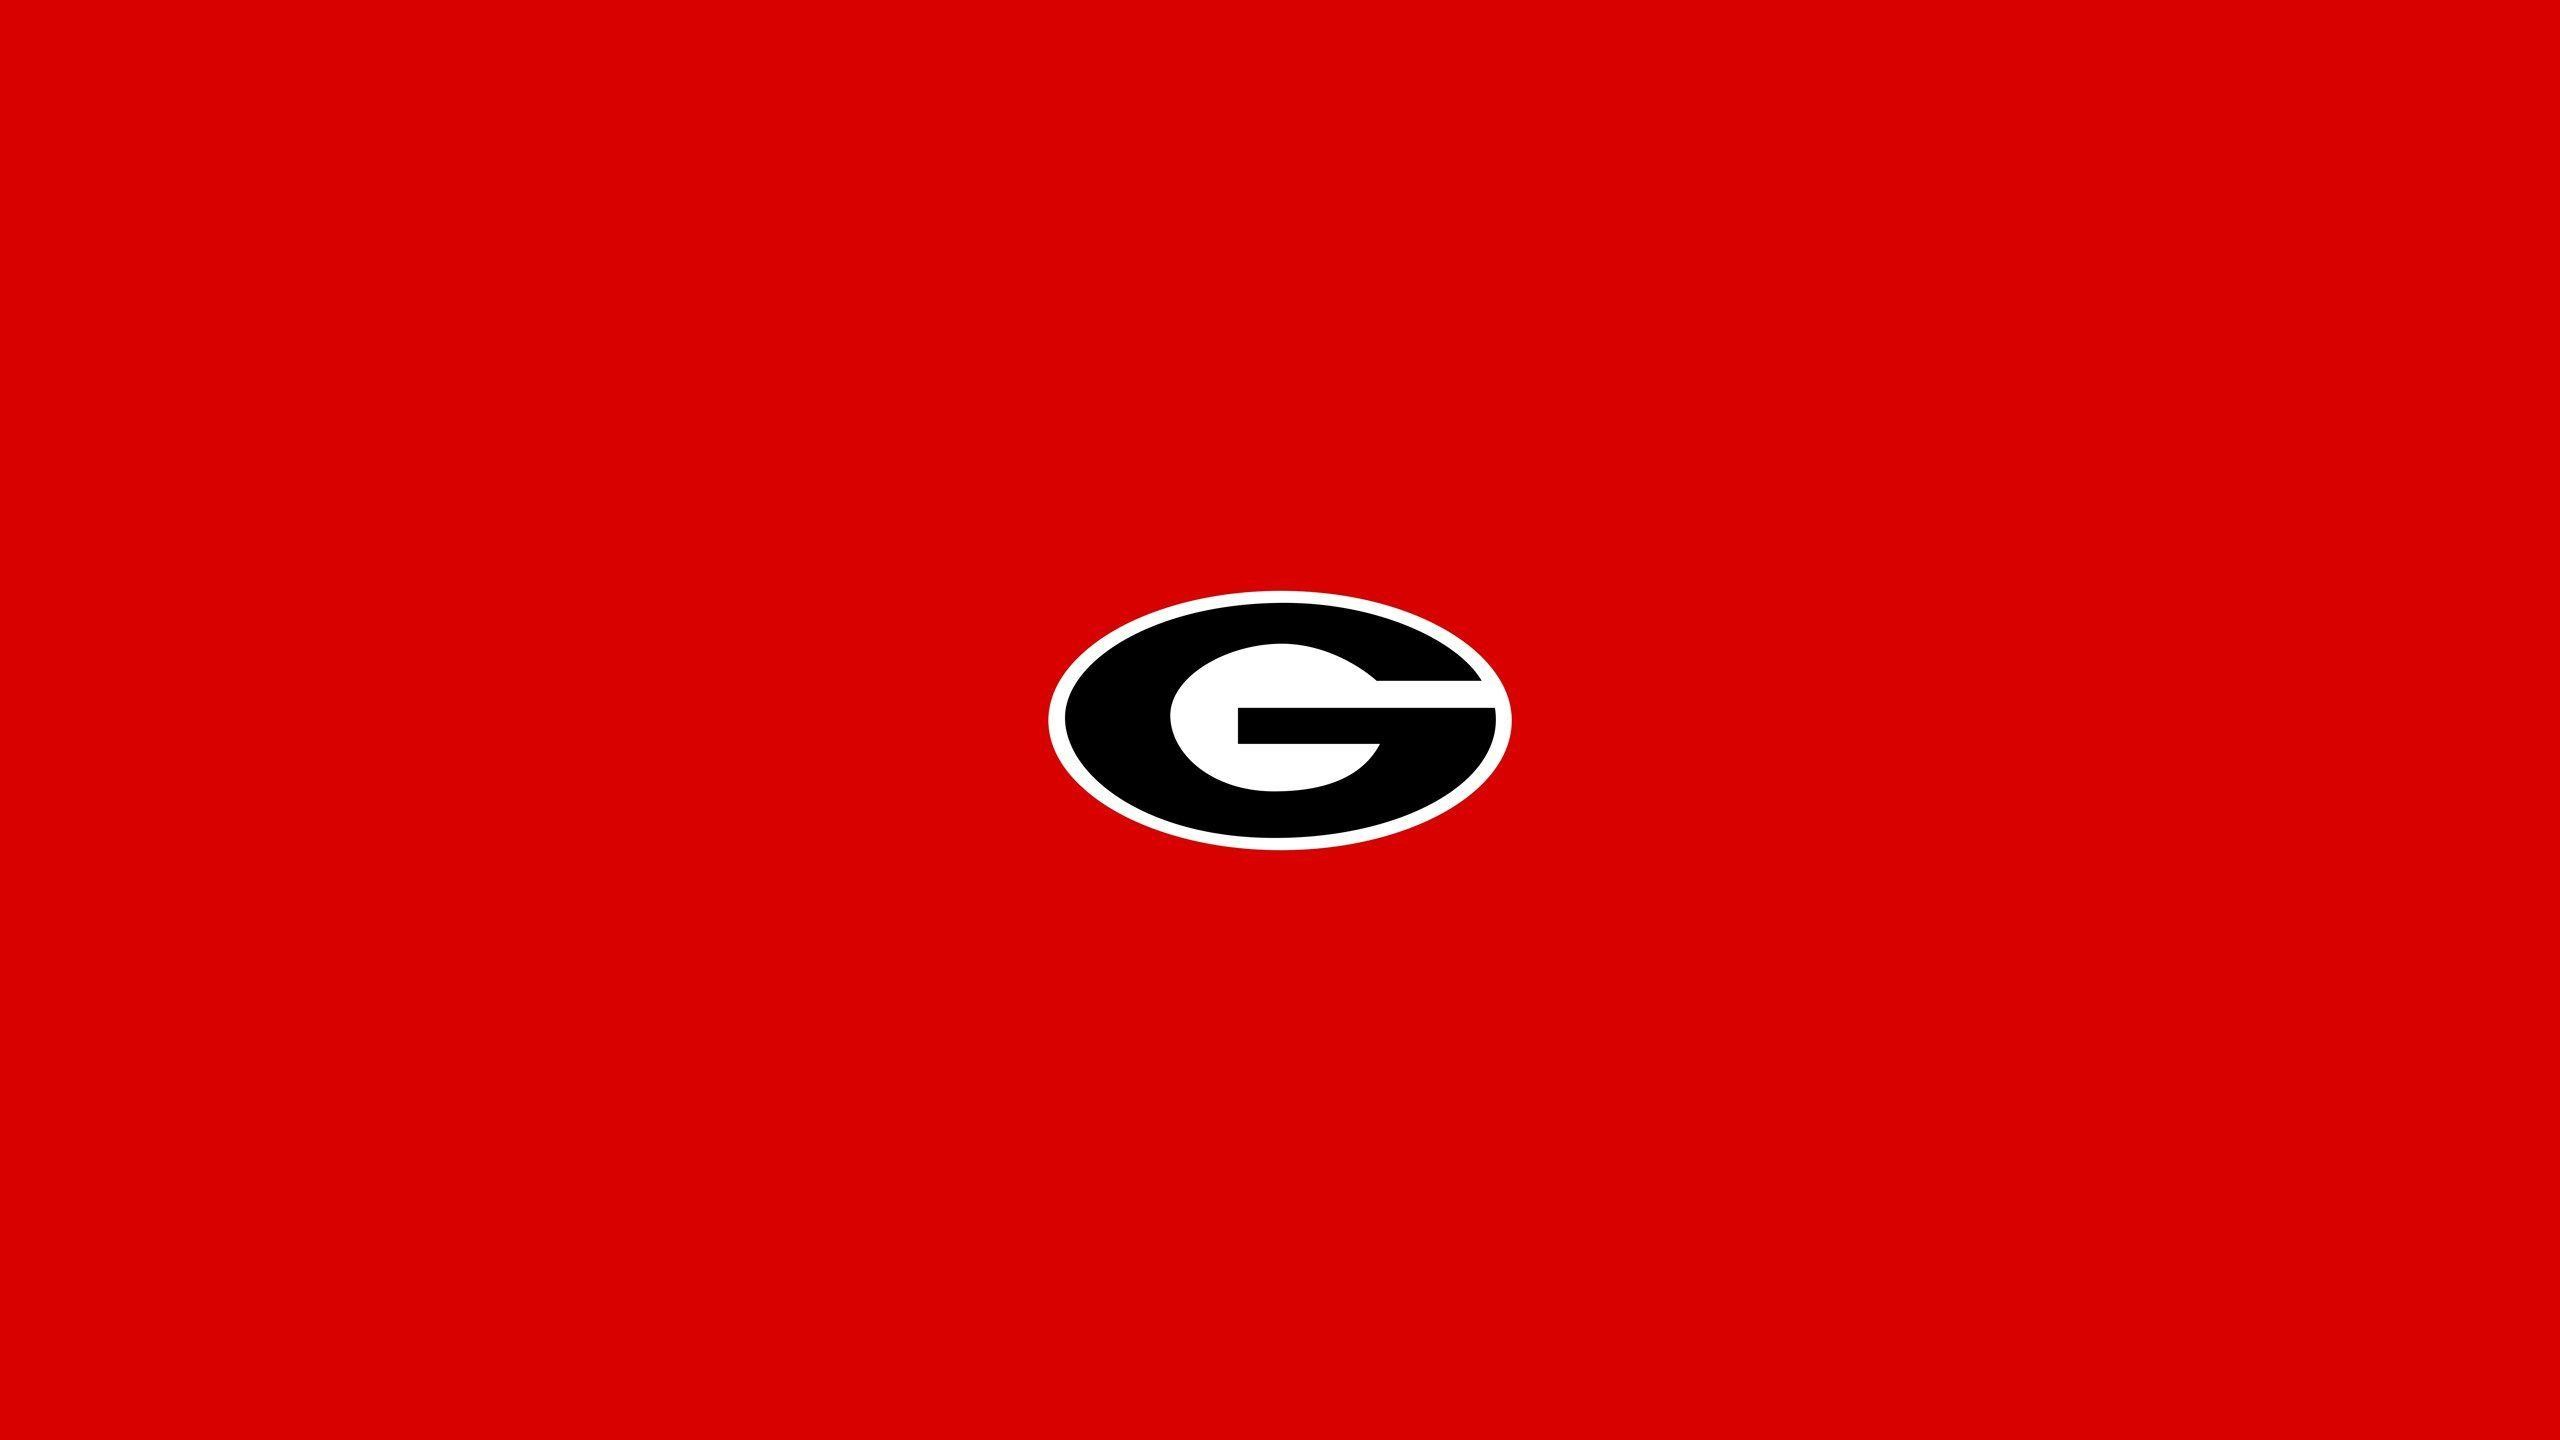 Georgia Bulldogs Wallpaper – HD Wallpapers Backgrounds of Your Choice